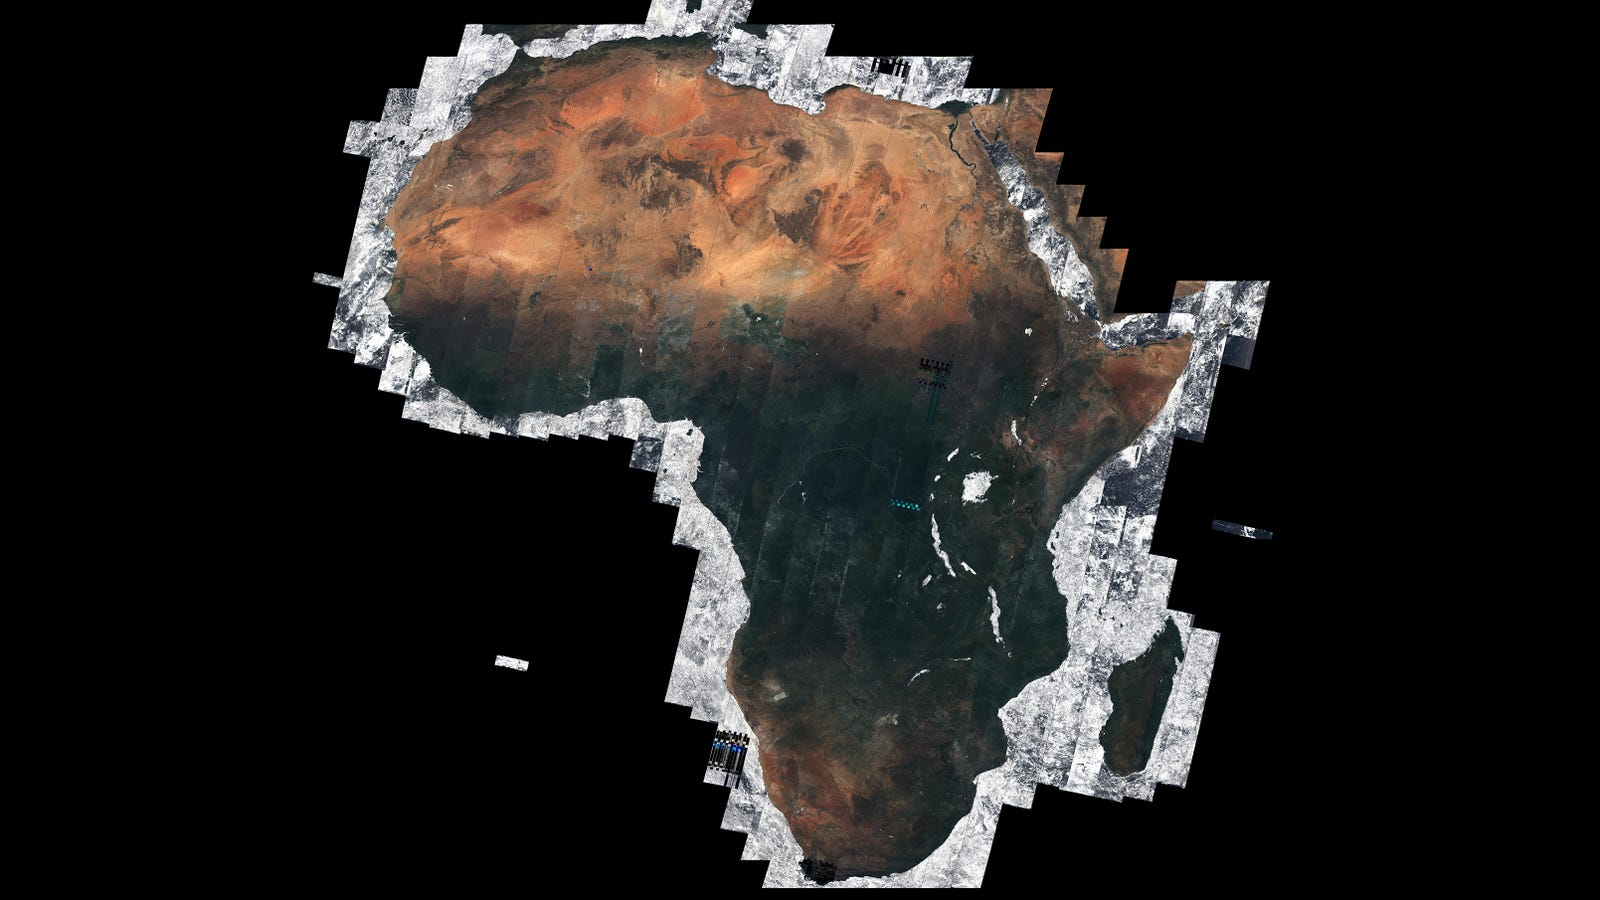 Stunning 7,000-Image Satellite Mosaic of Africa Doesn't Have a Single Cloud